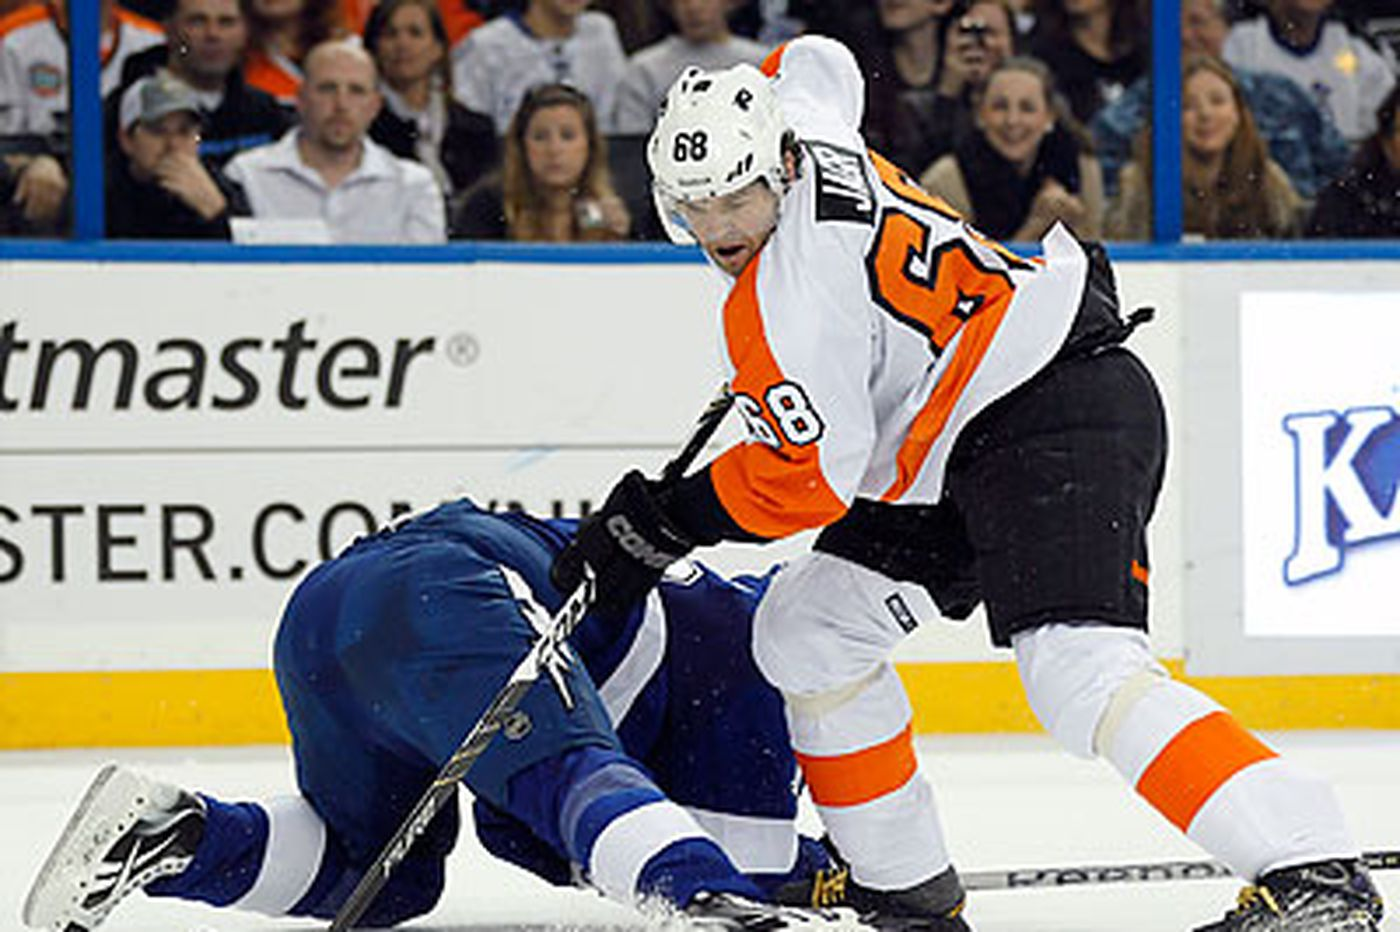 Flyers fall to Lightning, 5-1